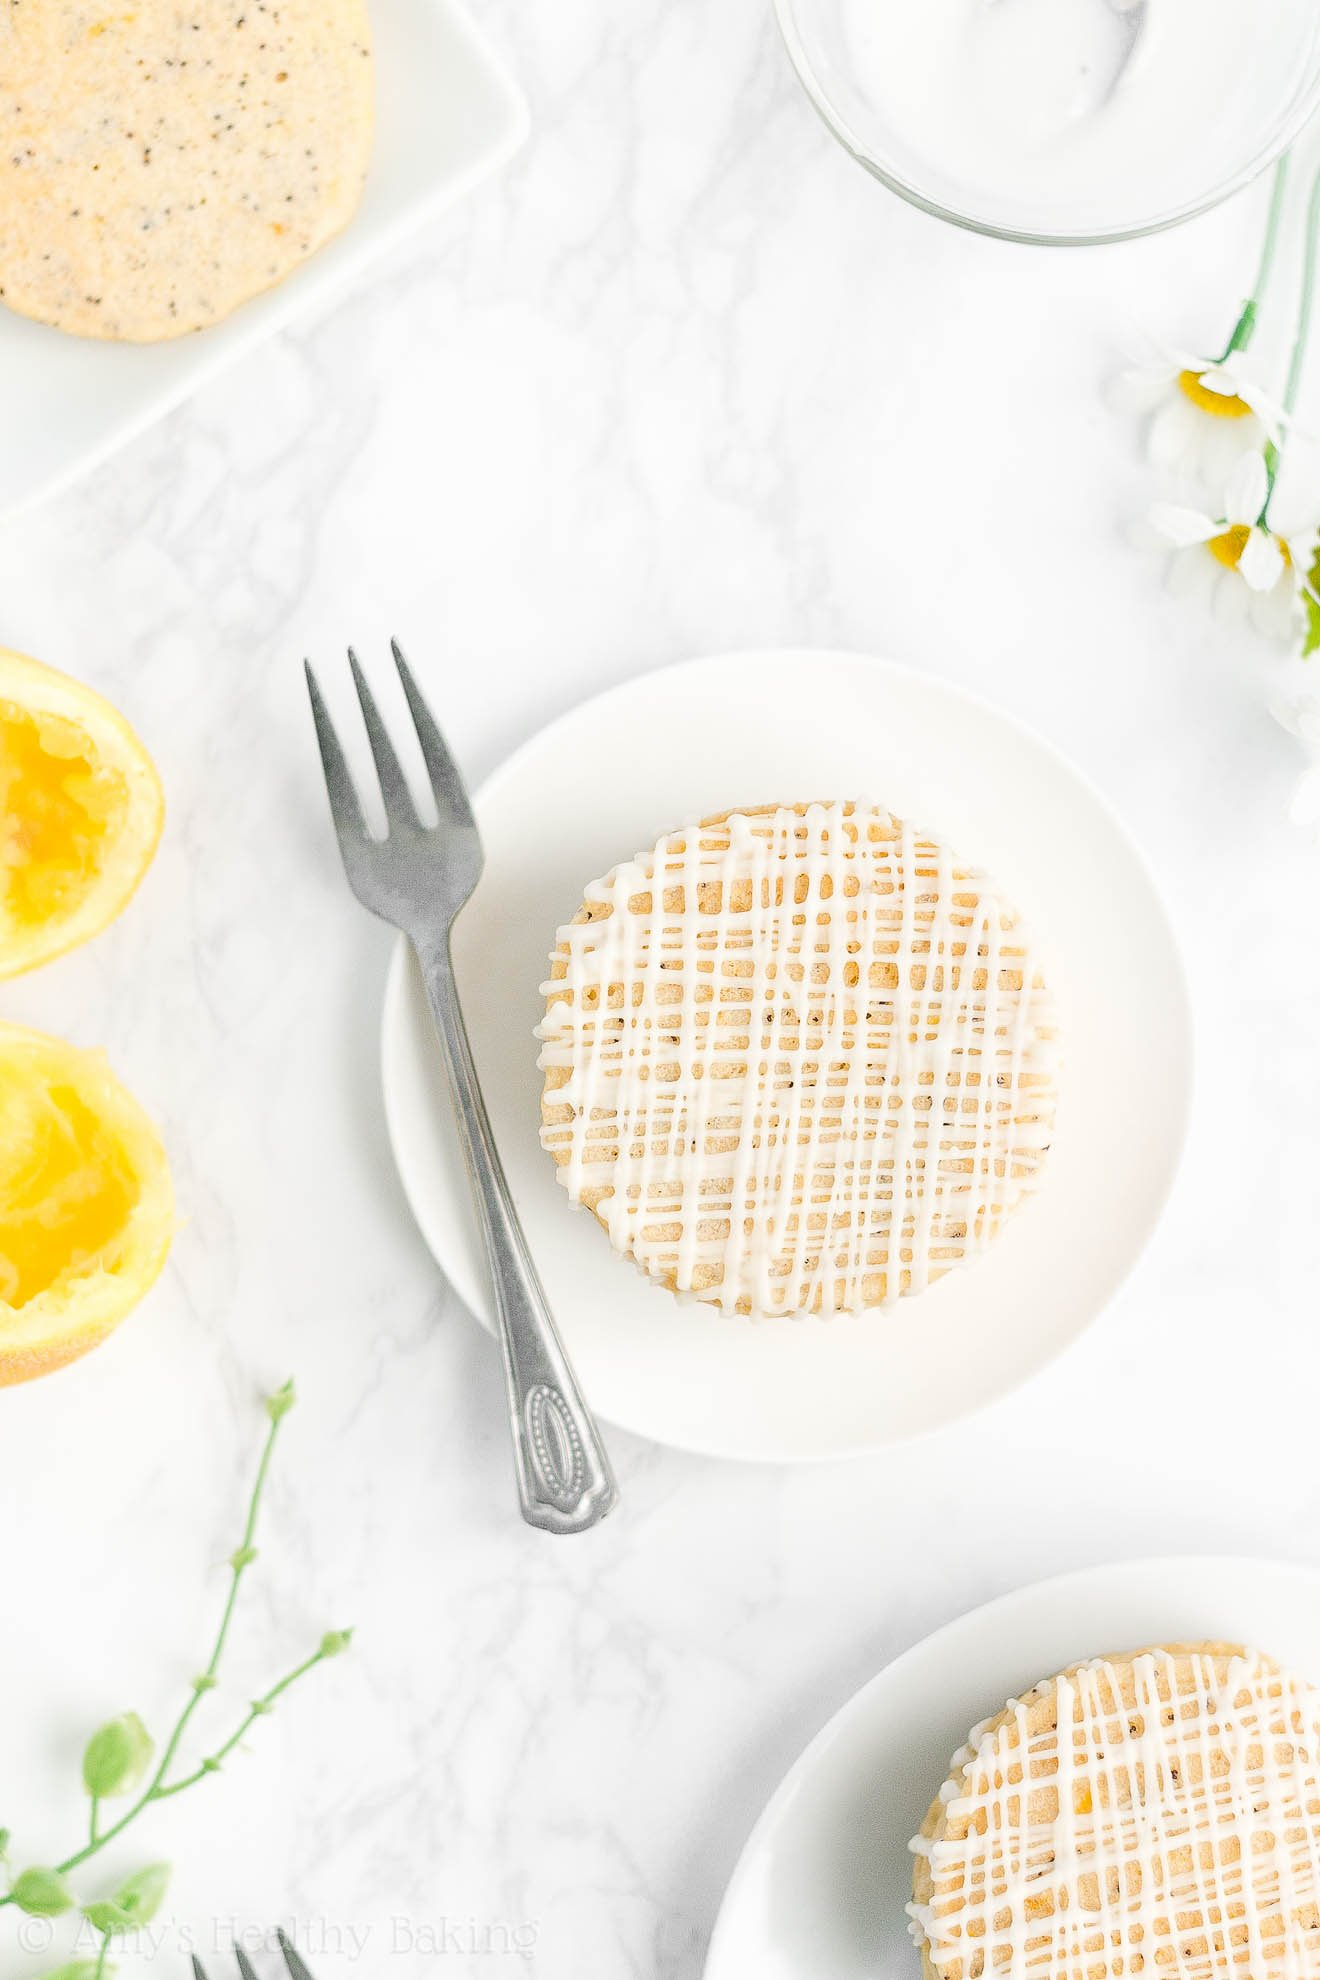 Easy Healthy Low Fat Low Calorie No Sugar Fluffy Lemon Poppy Seed Pancakes